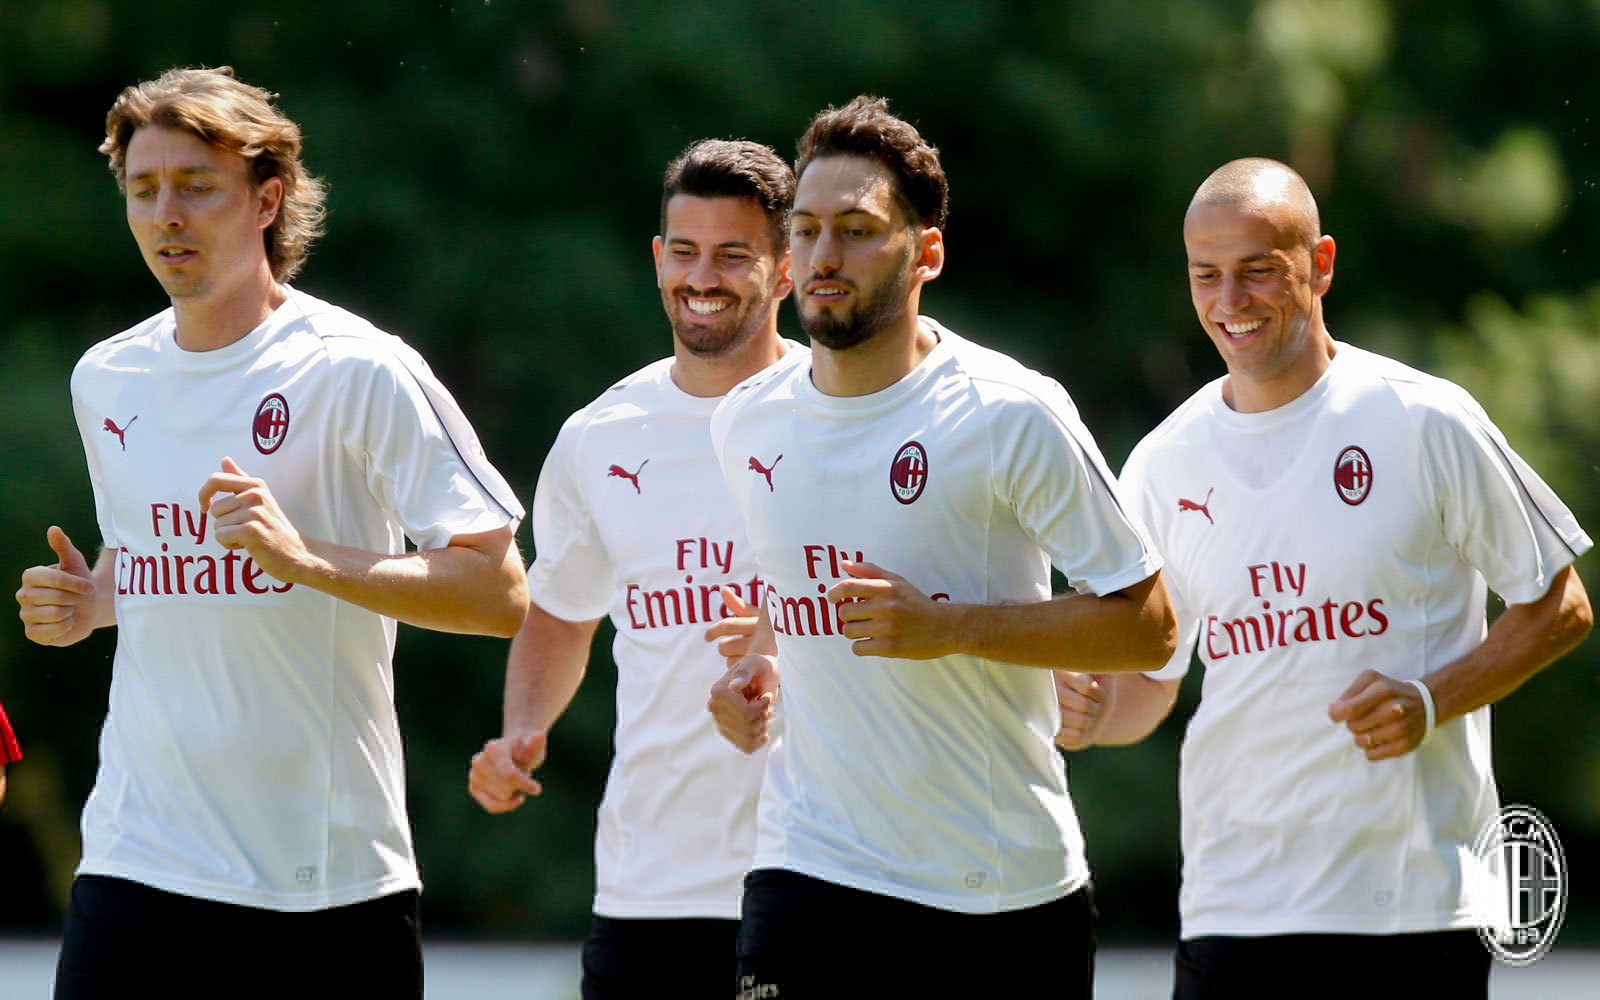 Riccardo Montolivo, Mateo Musacchio, Hakan Çalhanoğlu and Luca Antonelli during training at Milanello. (@acmilan.com)